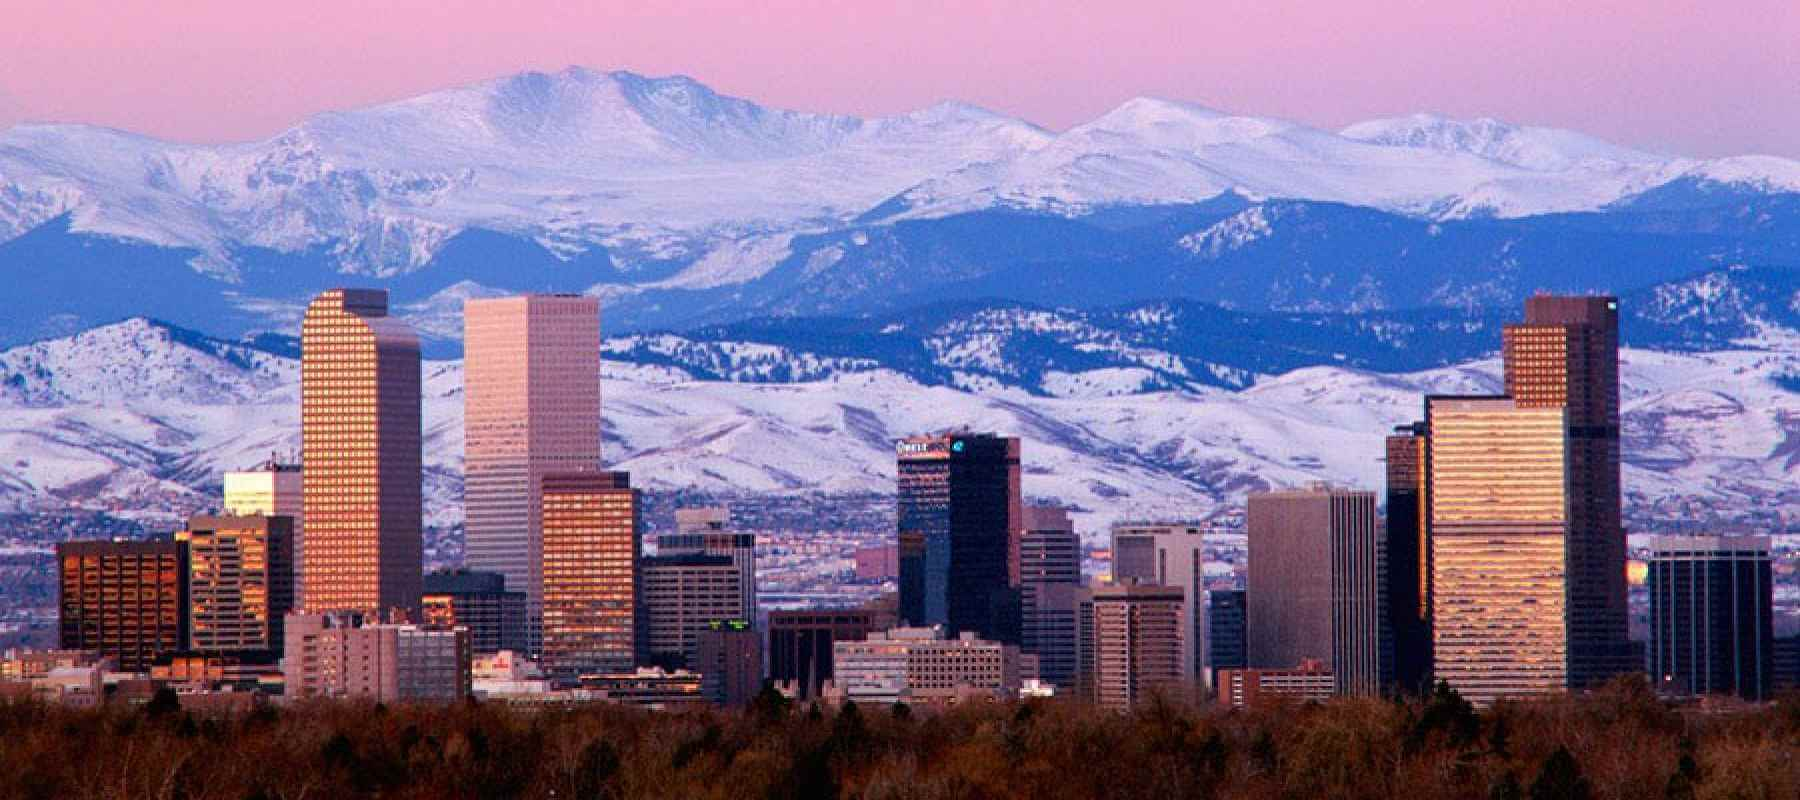 Denver: The second most Gentrified city in the U.S.